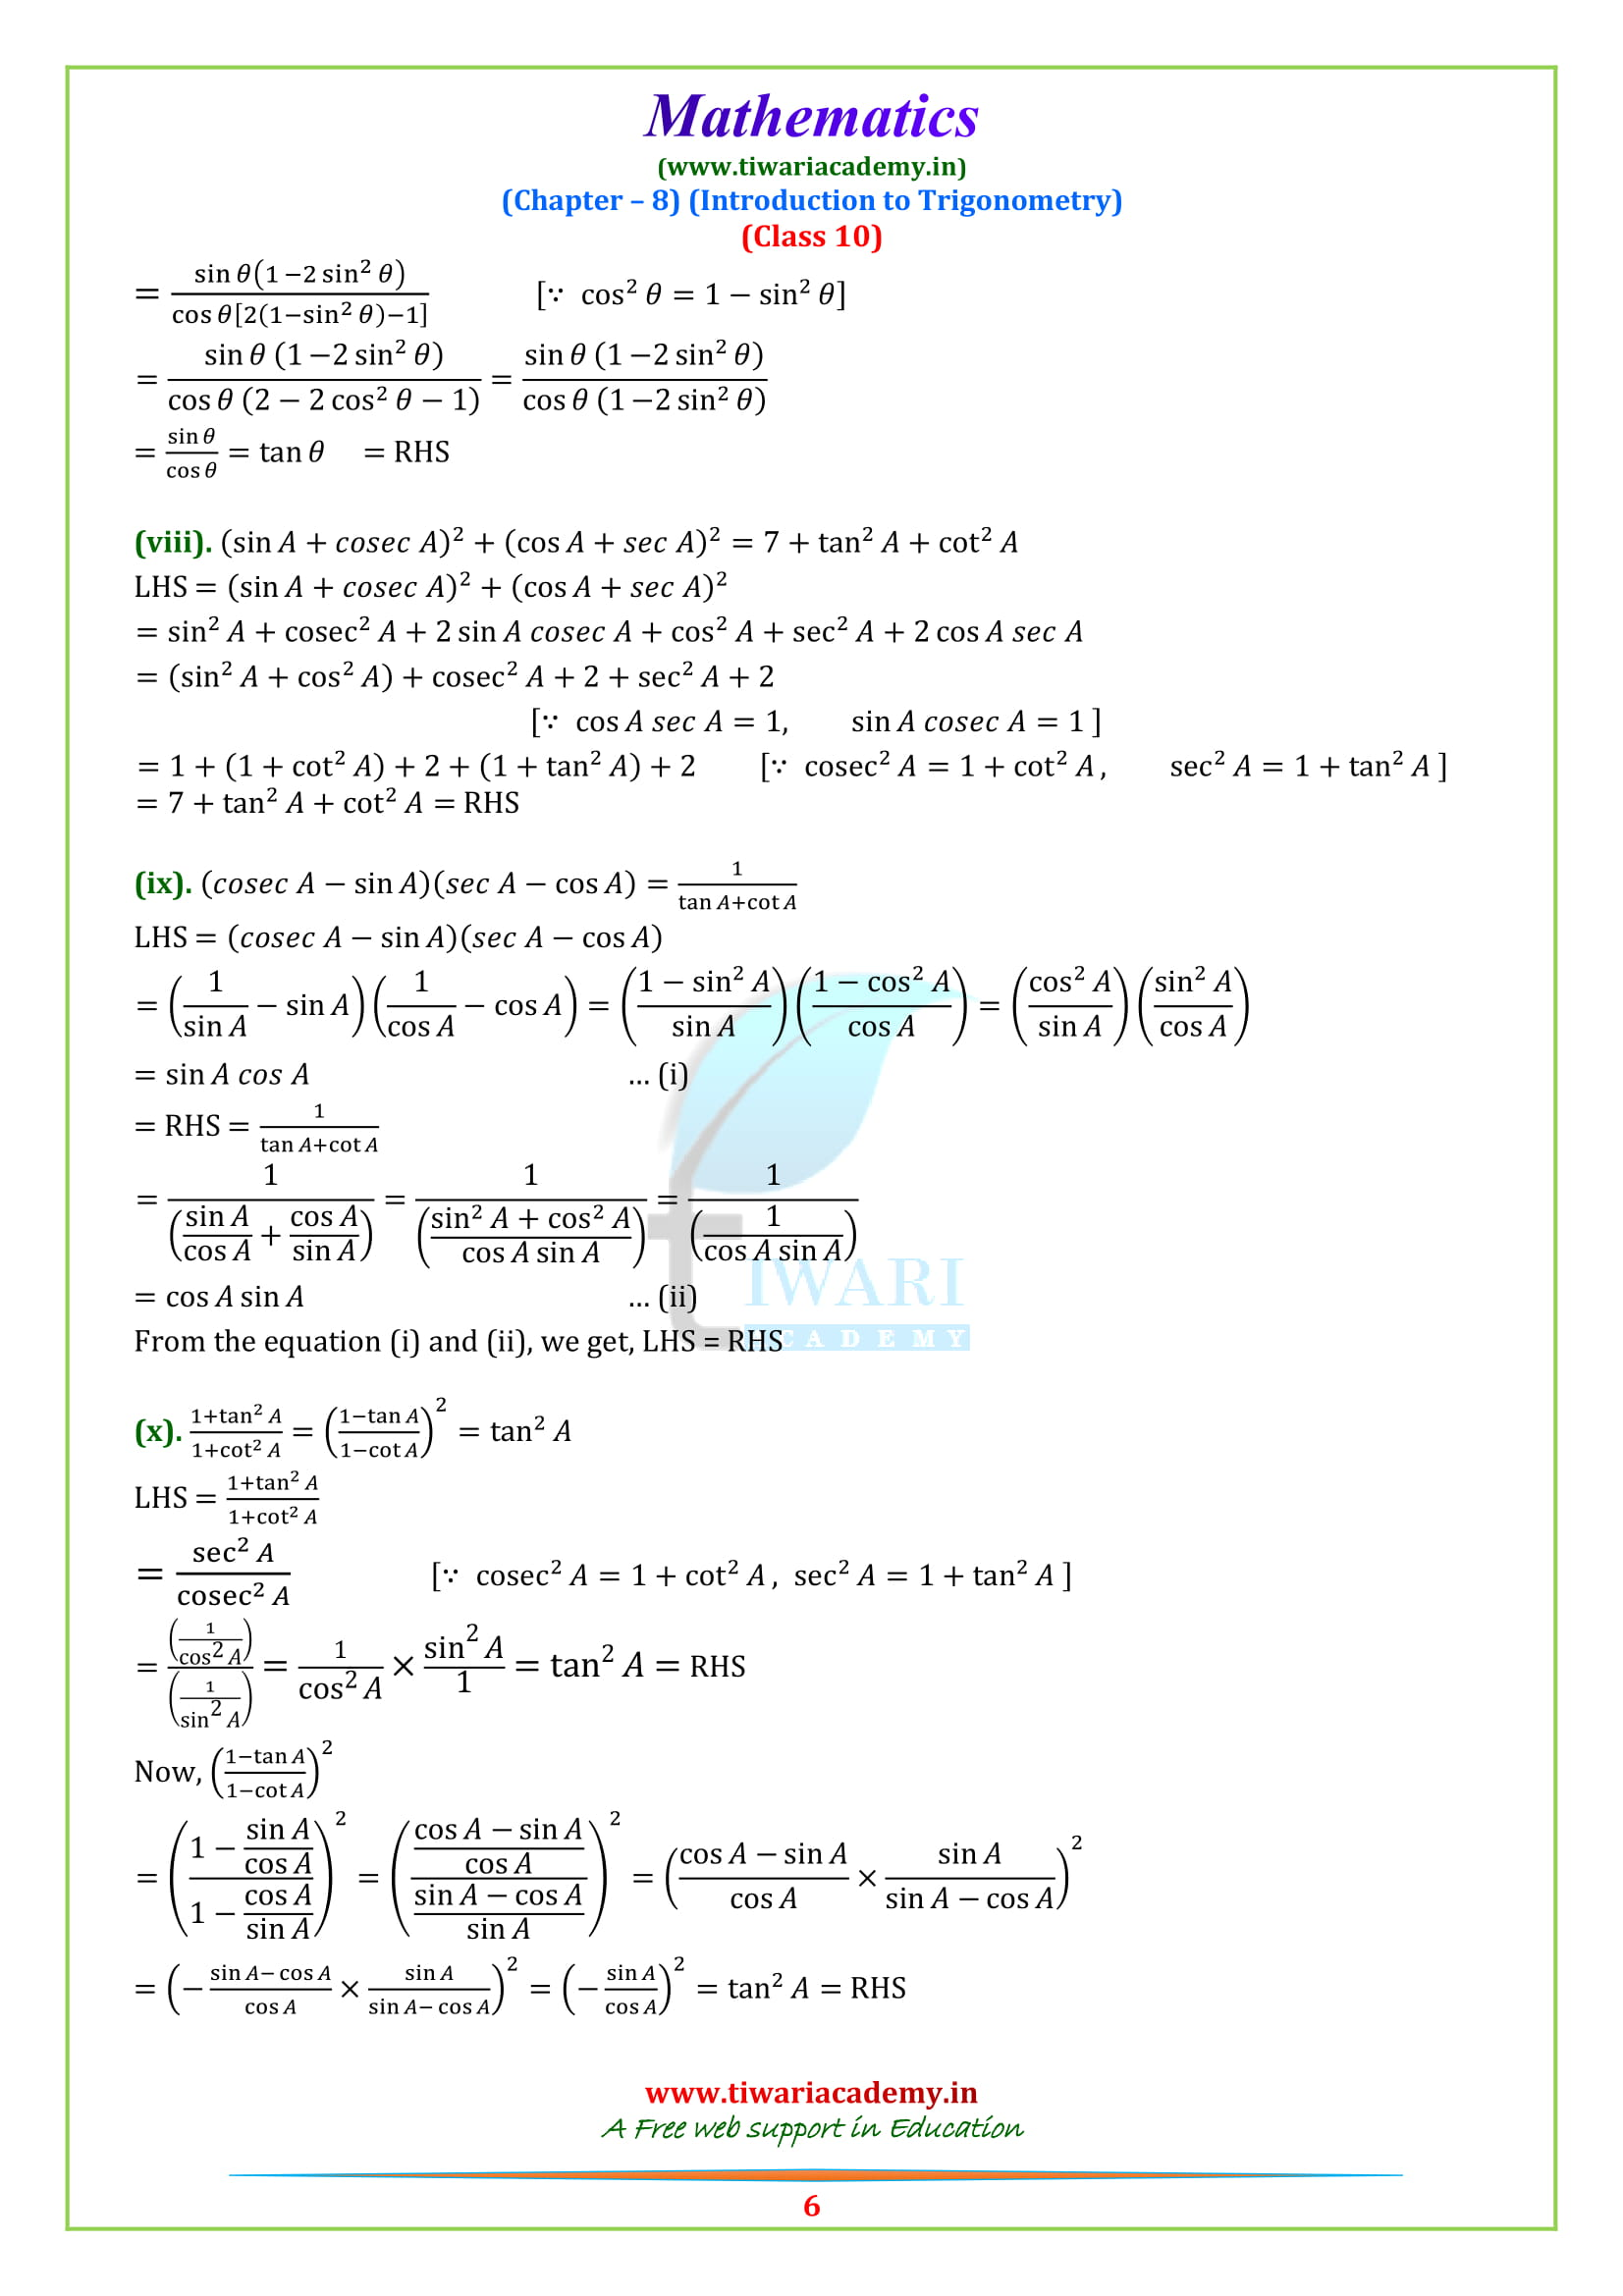 NCERT Solutions for class 10 Maths Chapter 8 Exercise 8.4 in simplified form